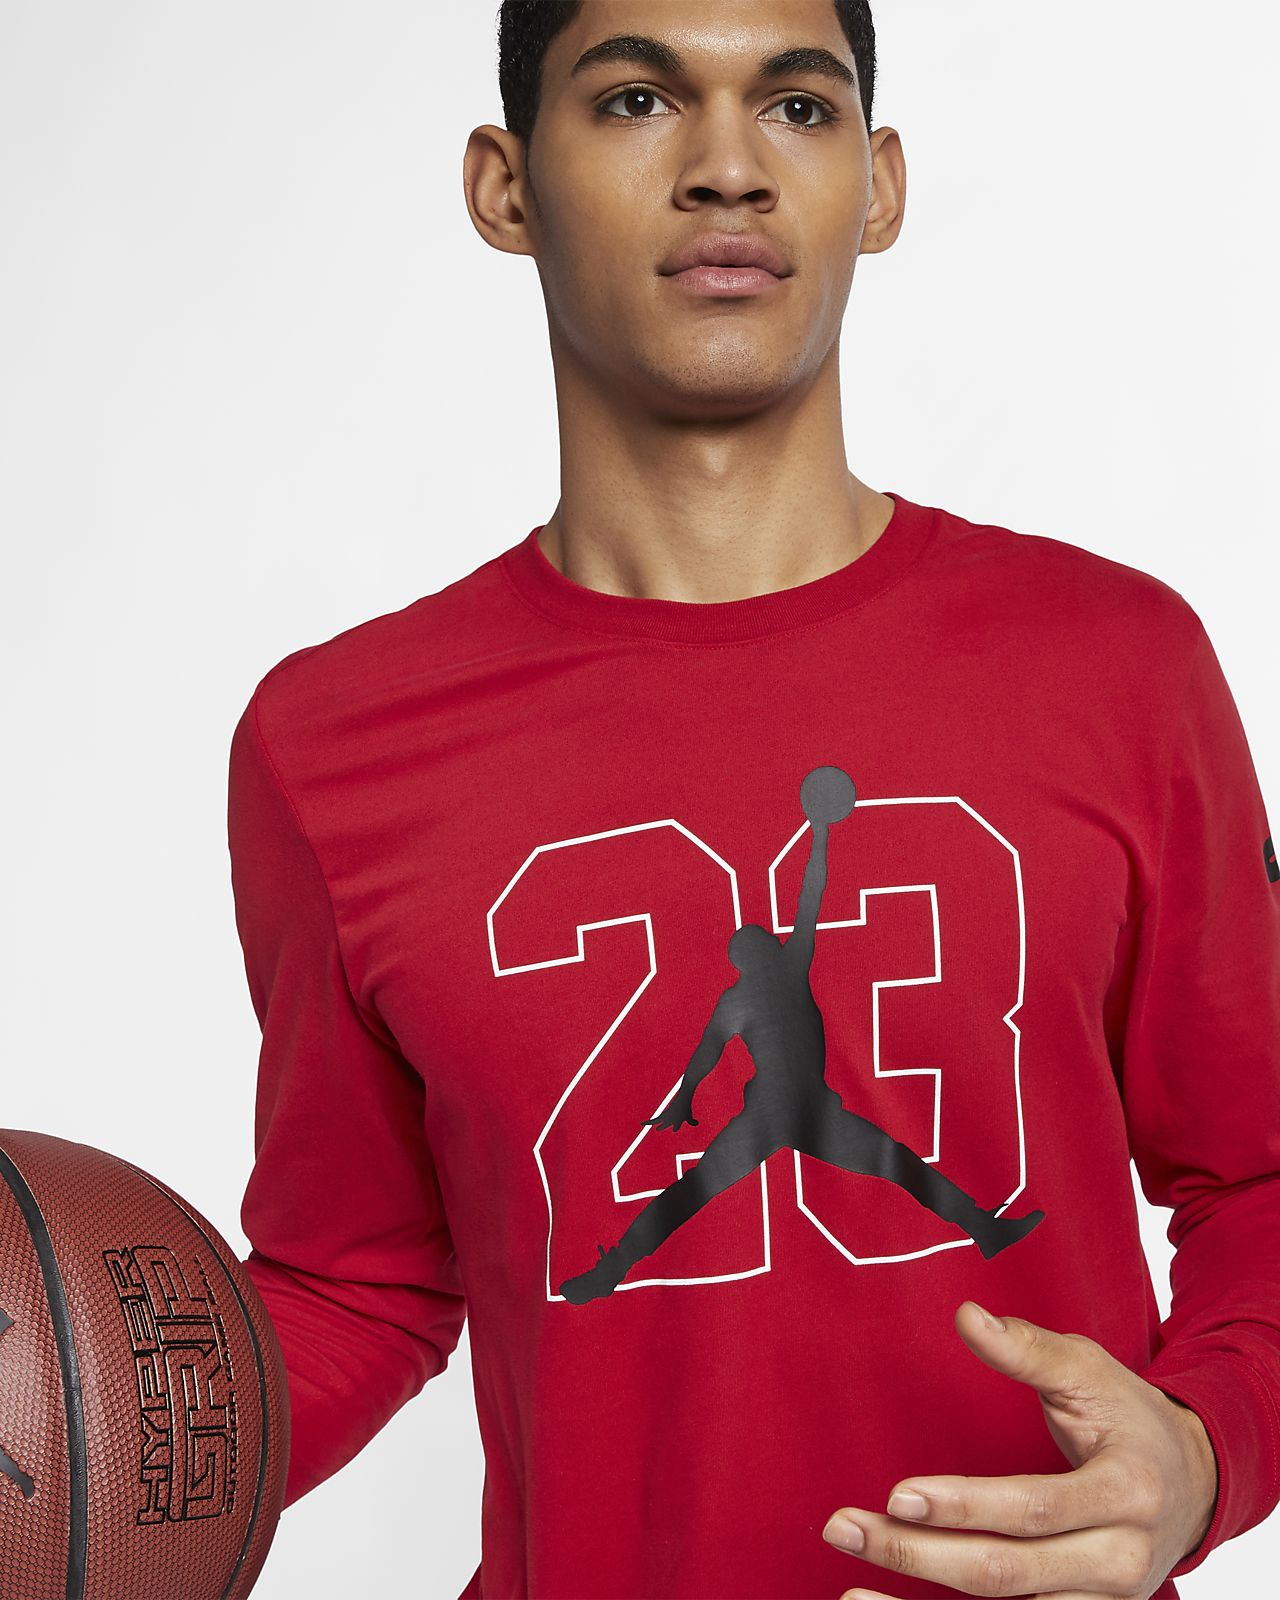 27add412c6ed41 Jordan Men s Graphic Long-Sleeve Basketball T-Shirt. Nike.com